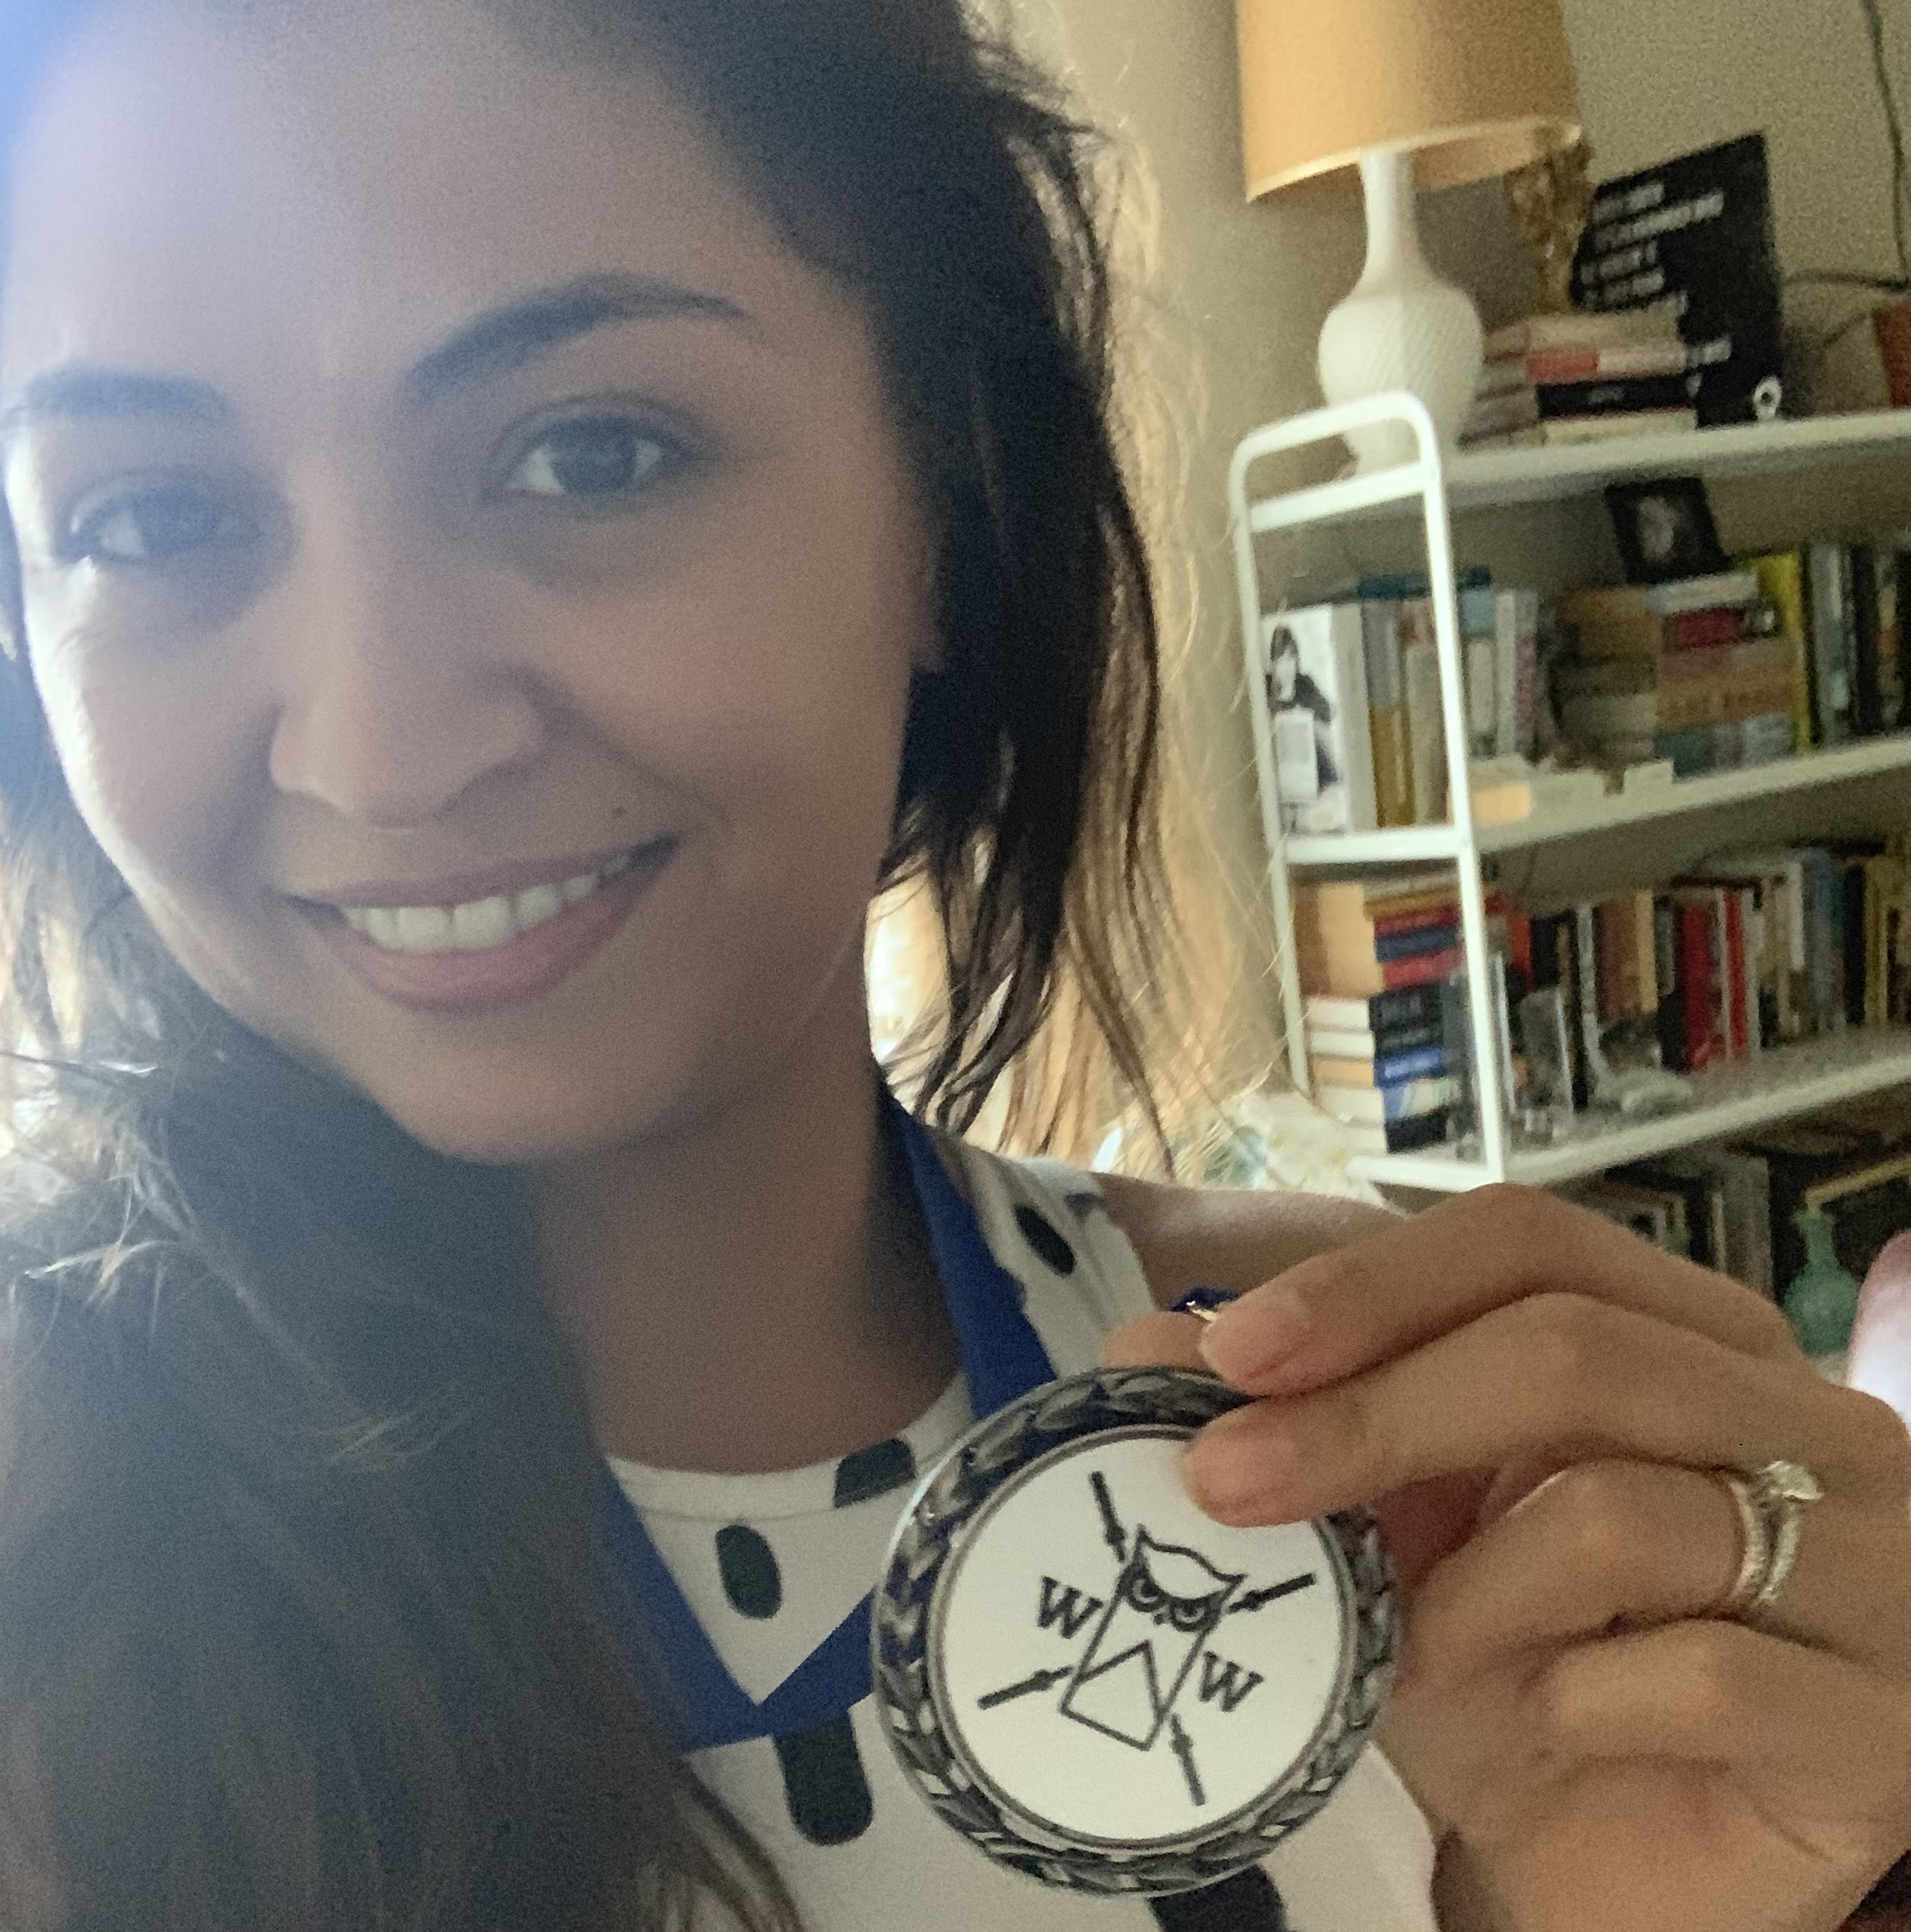 roni holding a weightlifting medal